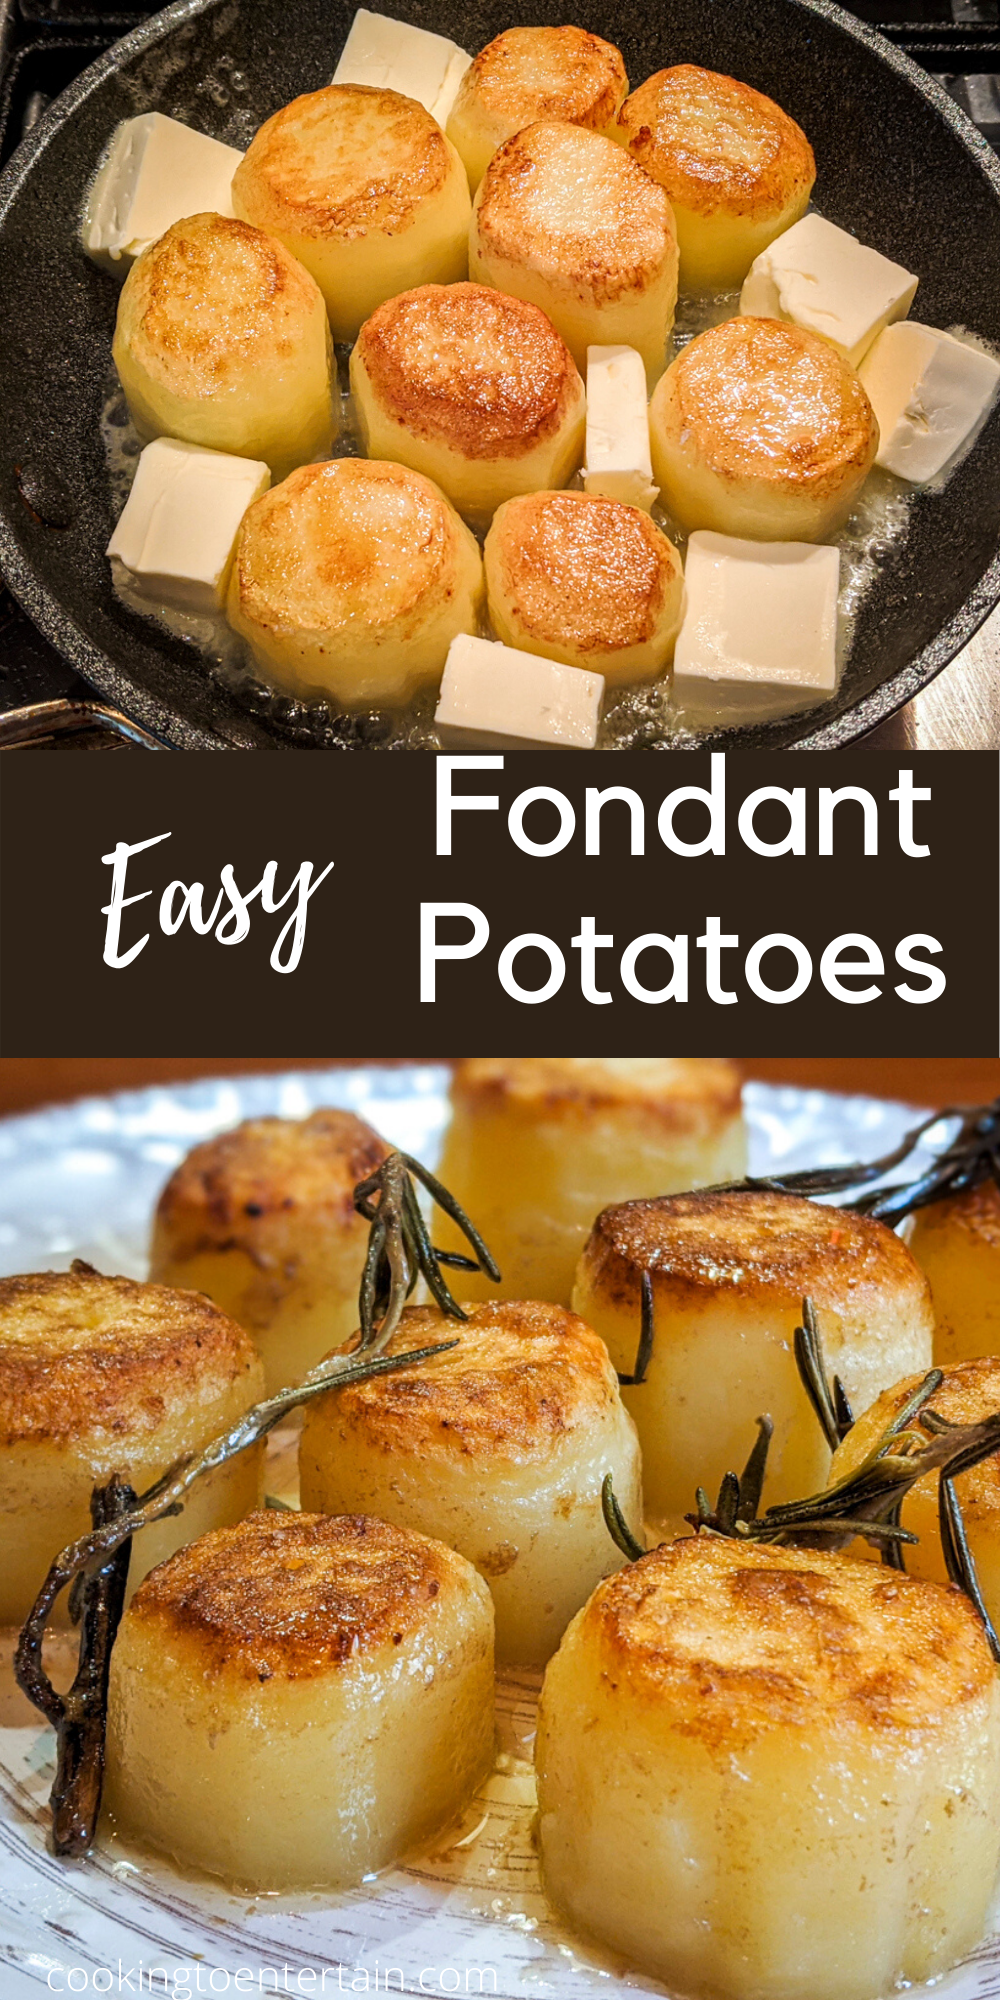 Fondant Potatoes Easy Step By Step Instructions For Decadent Potatoes Recipe Fondant Potatoes Dinner Party Recipes Recipes